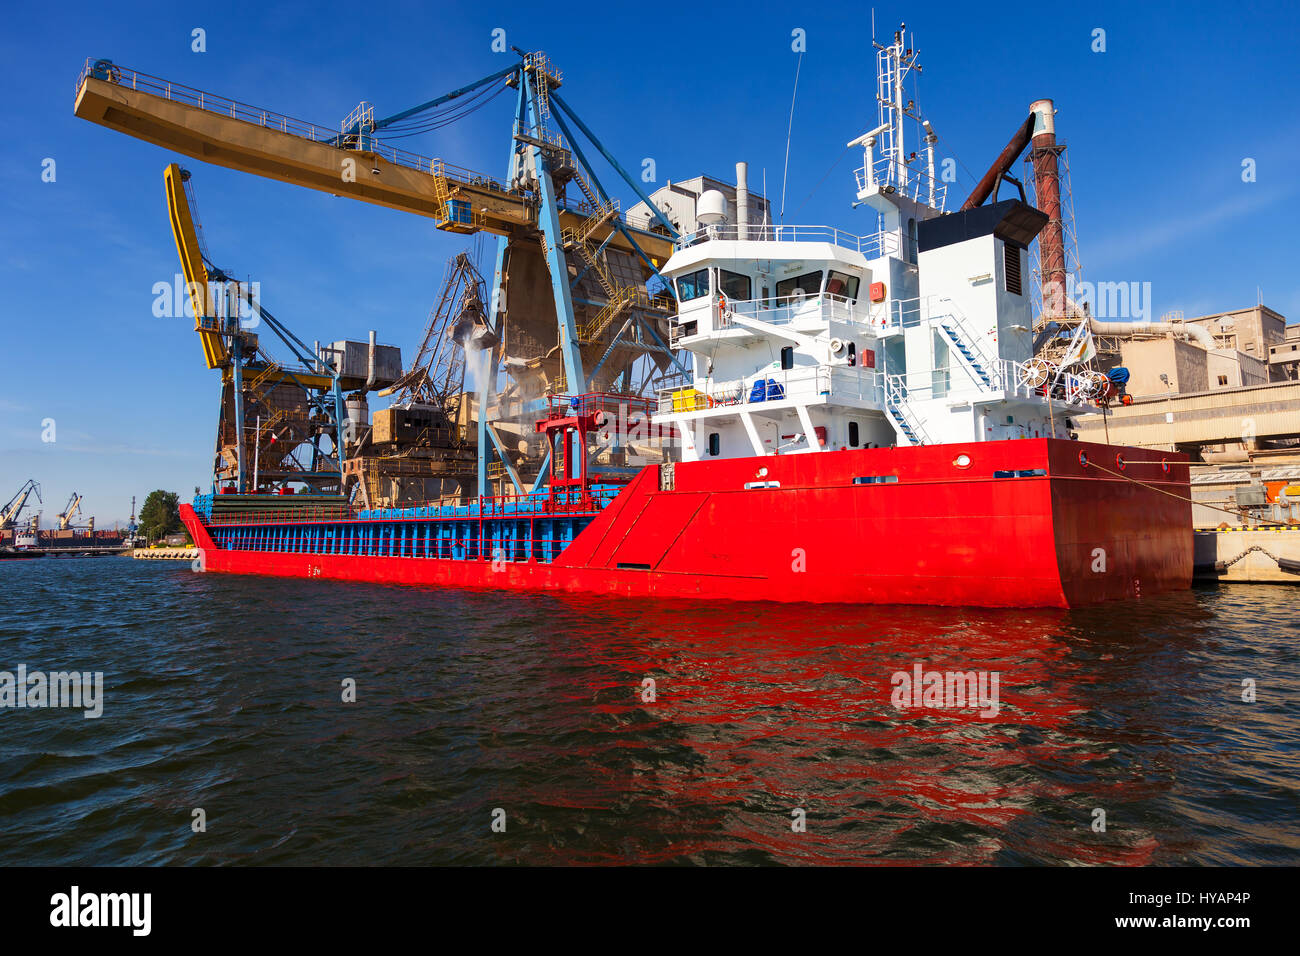 Loading phosphate fertilizers in the port of Gdansk, Poland. - Stock Image